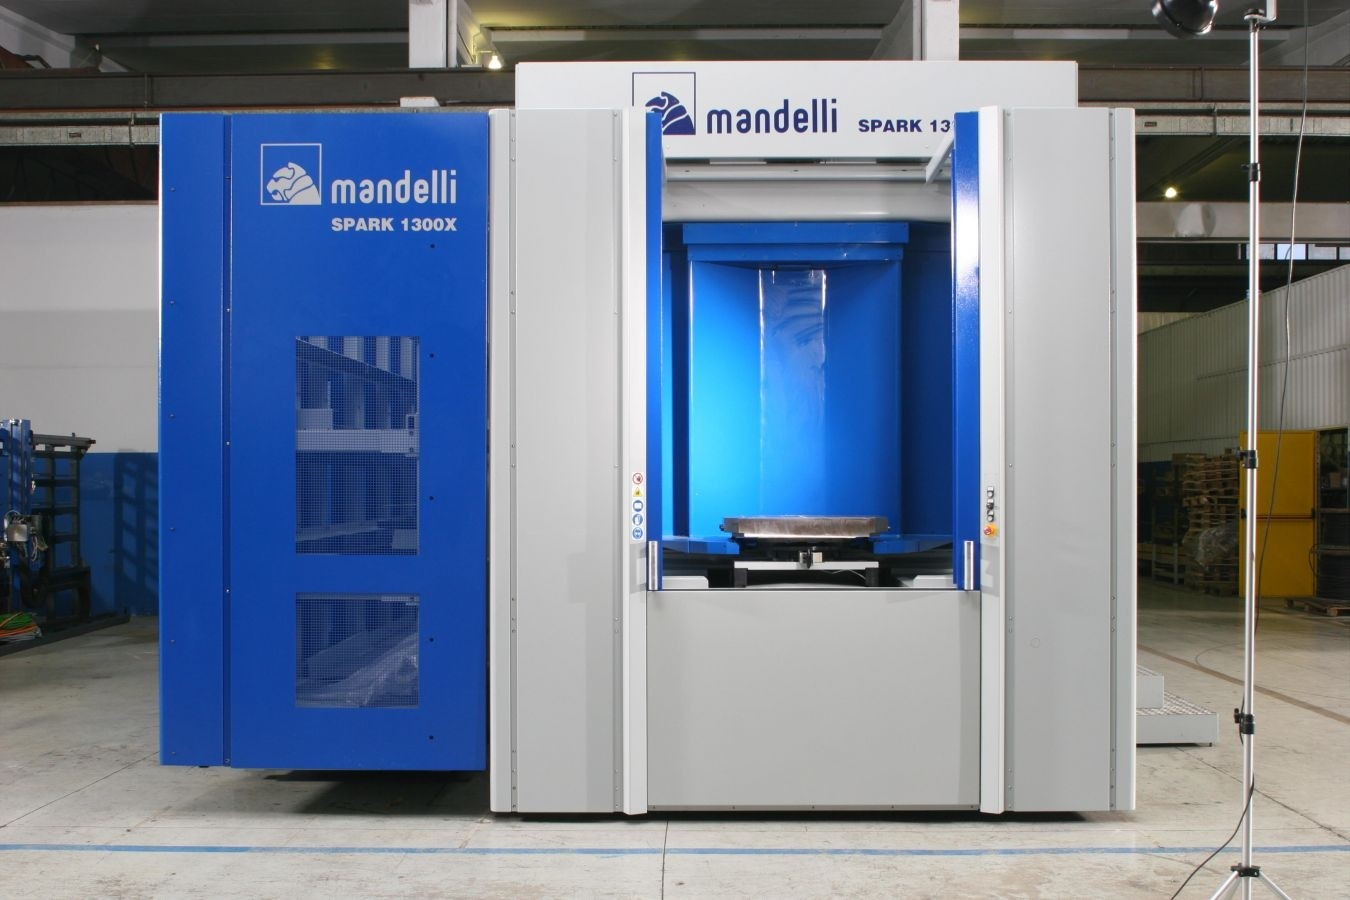 Mandelli Spark X 1600 CNC Horizontal Machining Center